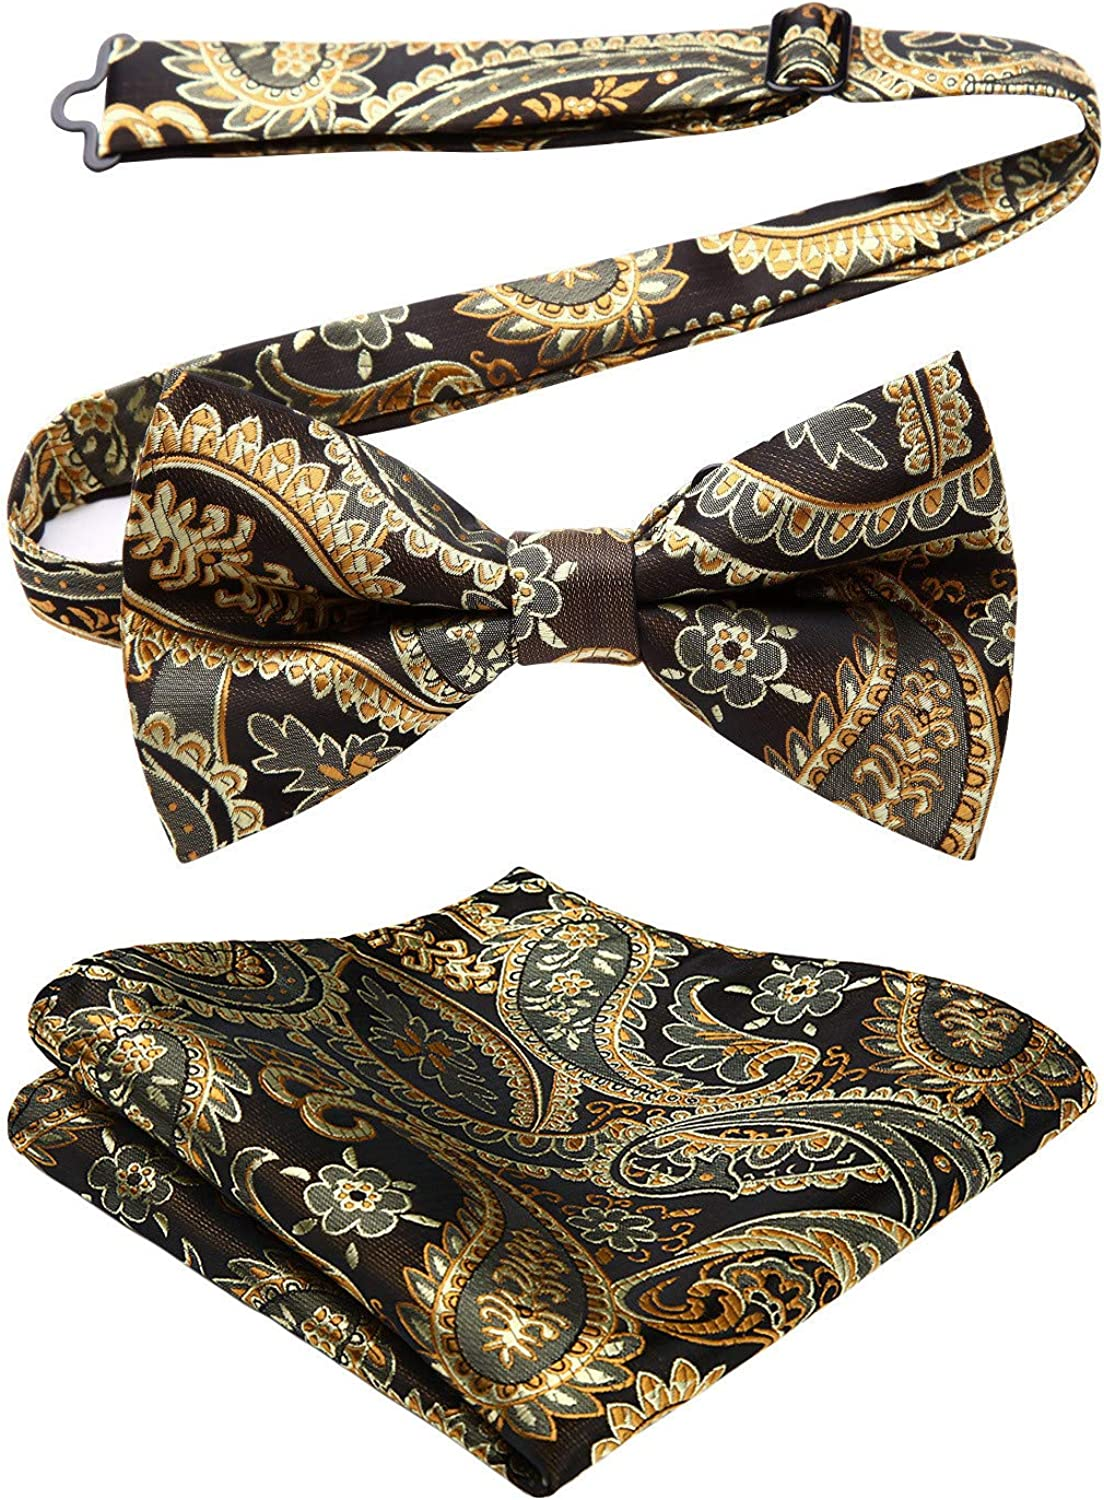 Vintage Yellow and Blue Floral Design Fabric Self-Tie or Pre-Tied Bow Tie with Optional Matching Pocket Square